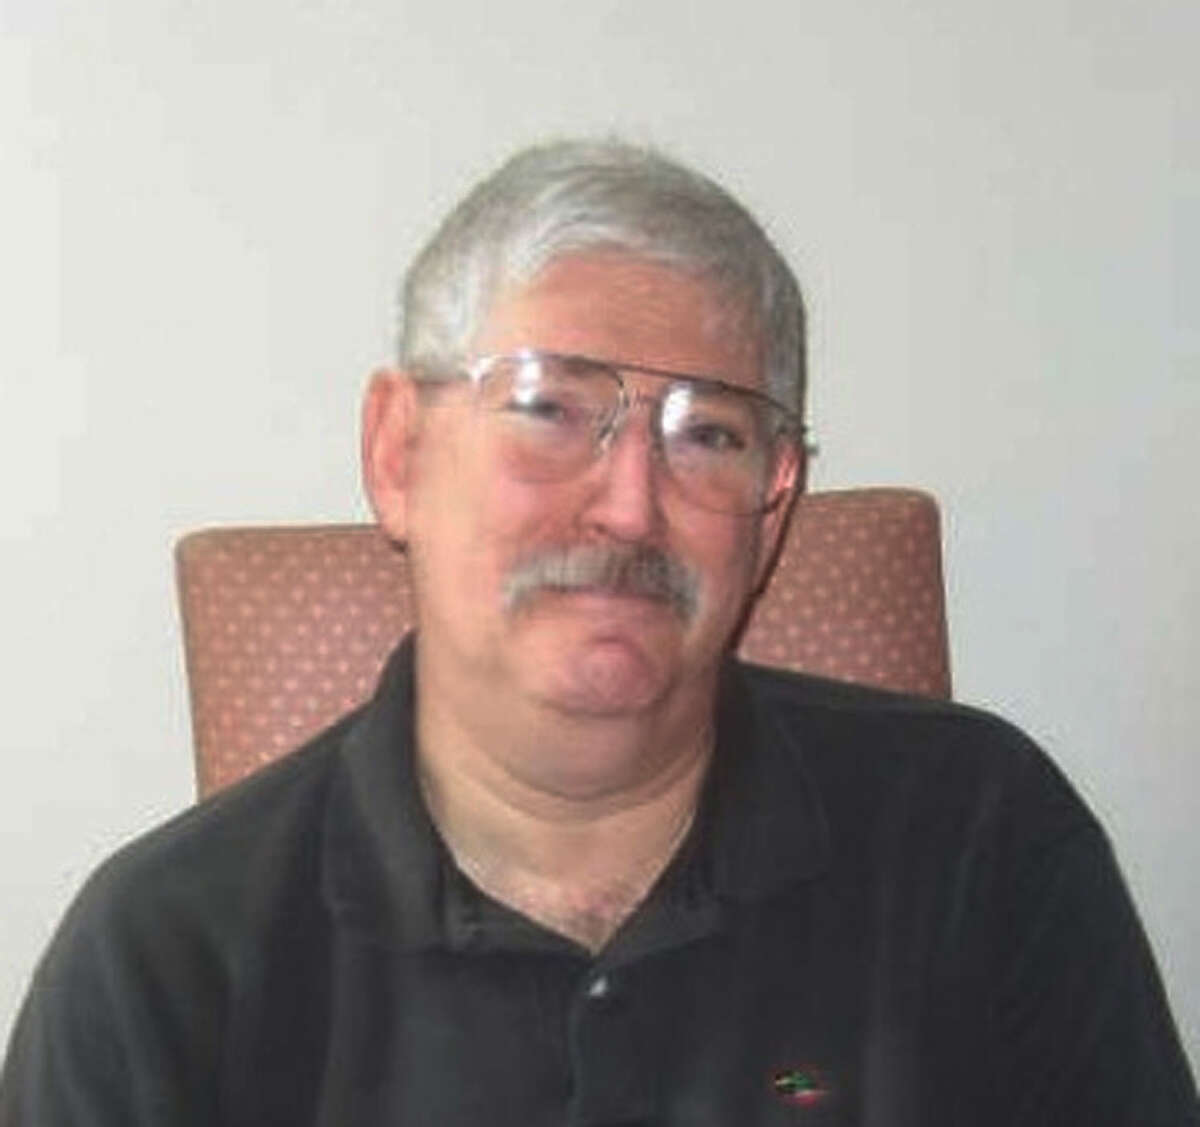 (FILES) This photo courtesy of the Levinson family at www.helpboblevinson.com shows a 2007 image of former FBI Agent Bob Levinson. - The former FBI agent Robert Levinson, who disappeared under mysterious circumstances in 2007, has died in Iranian custody, his family said on March 25, 2020.